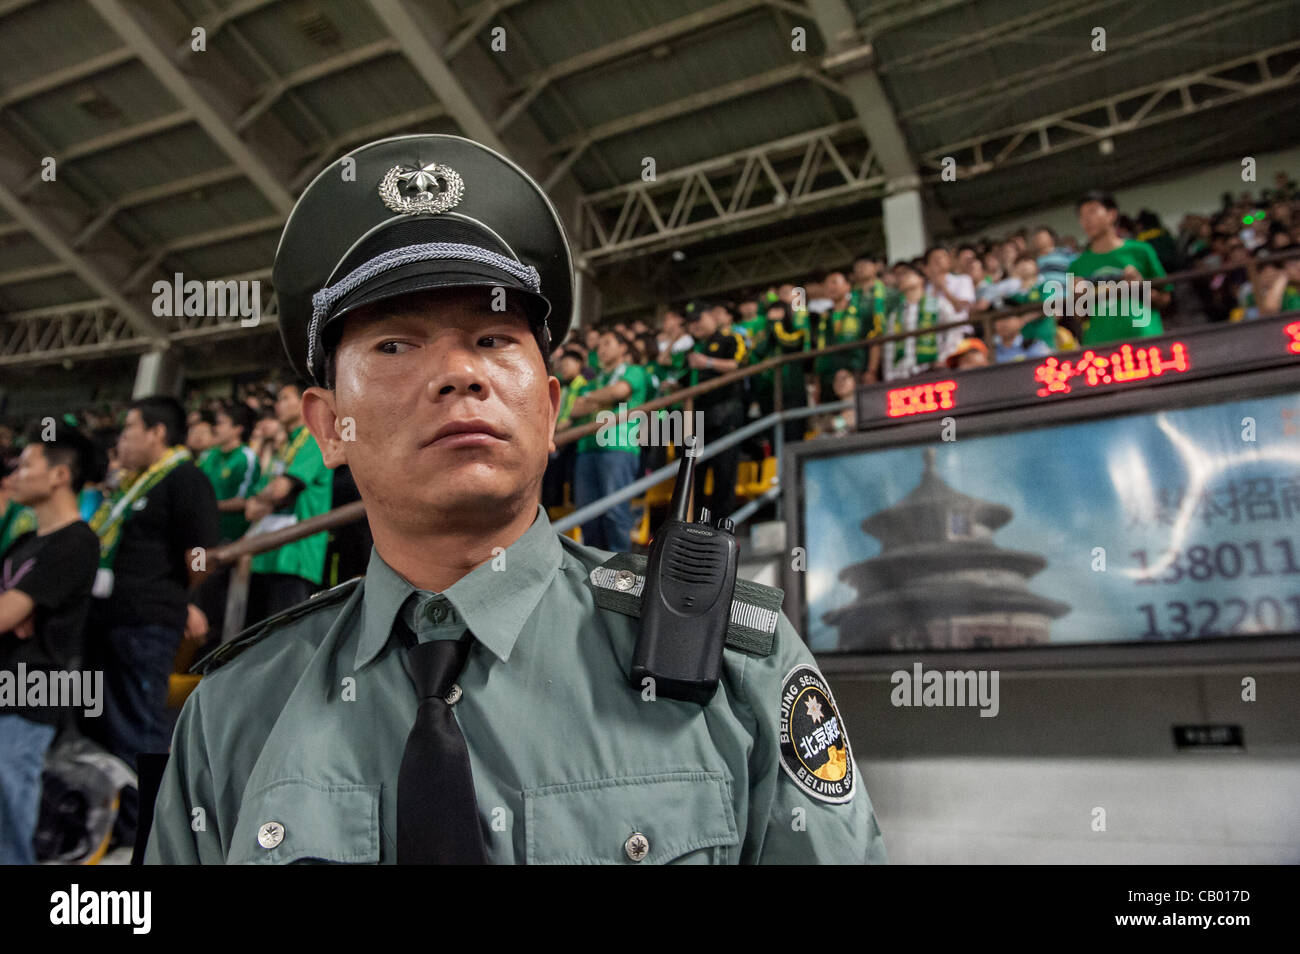 Security guard in the Workers' Stadium during the match between the Beijing Guoan and Guizhou Renhe football - Stock Image